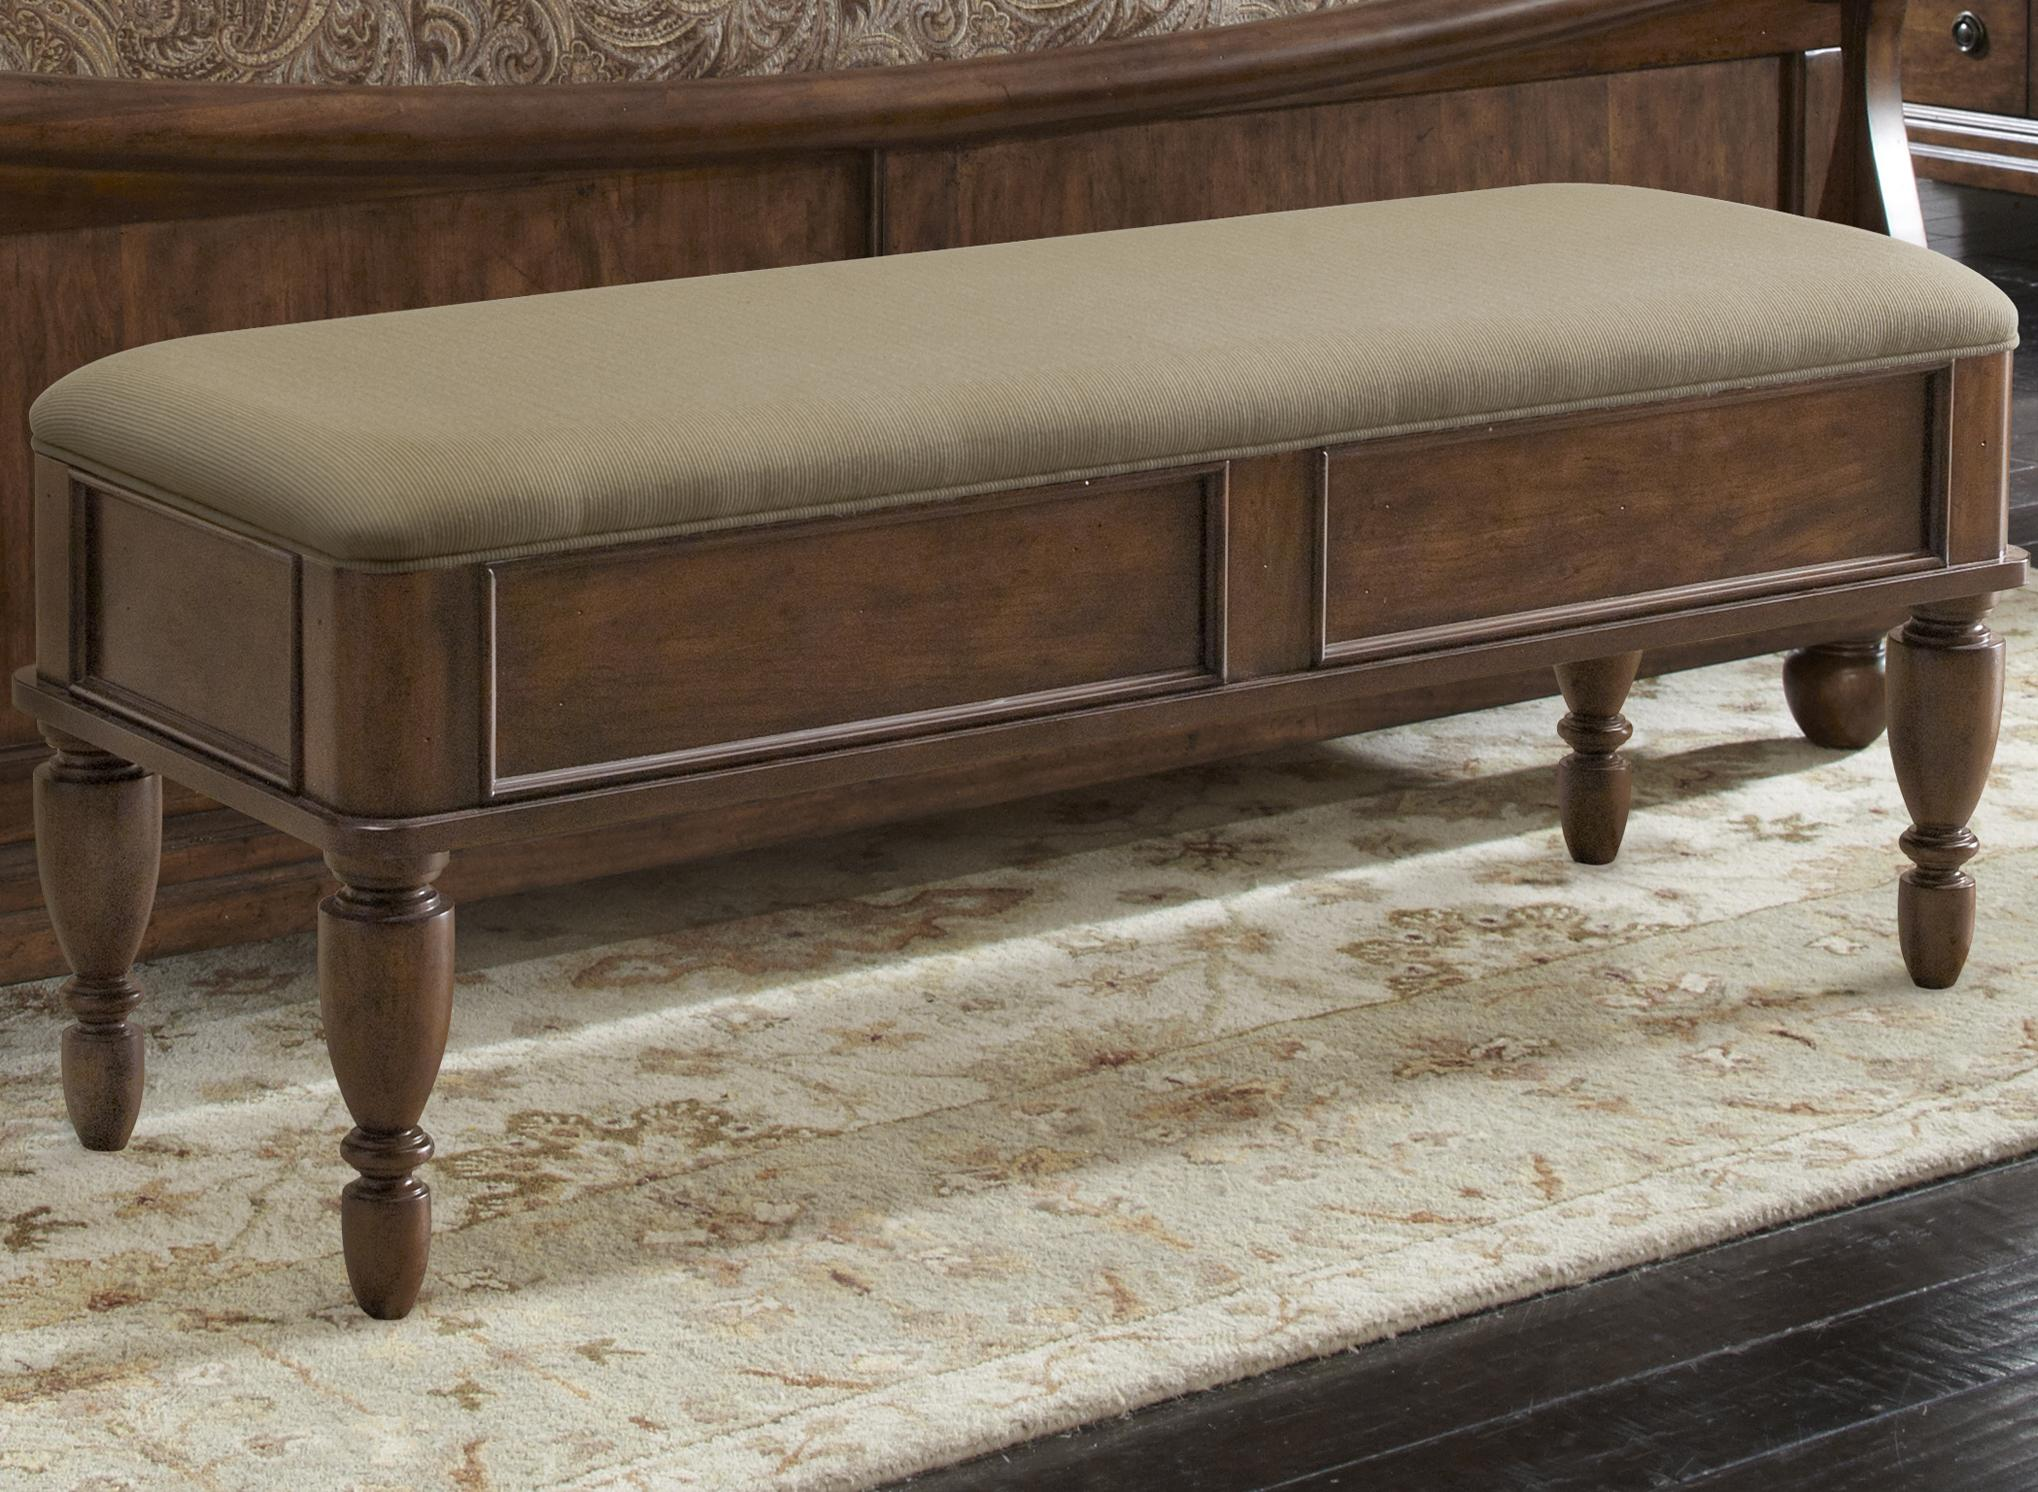 Bed Bench with Upholstered Seat by Liberty Furniture